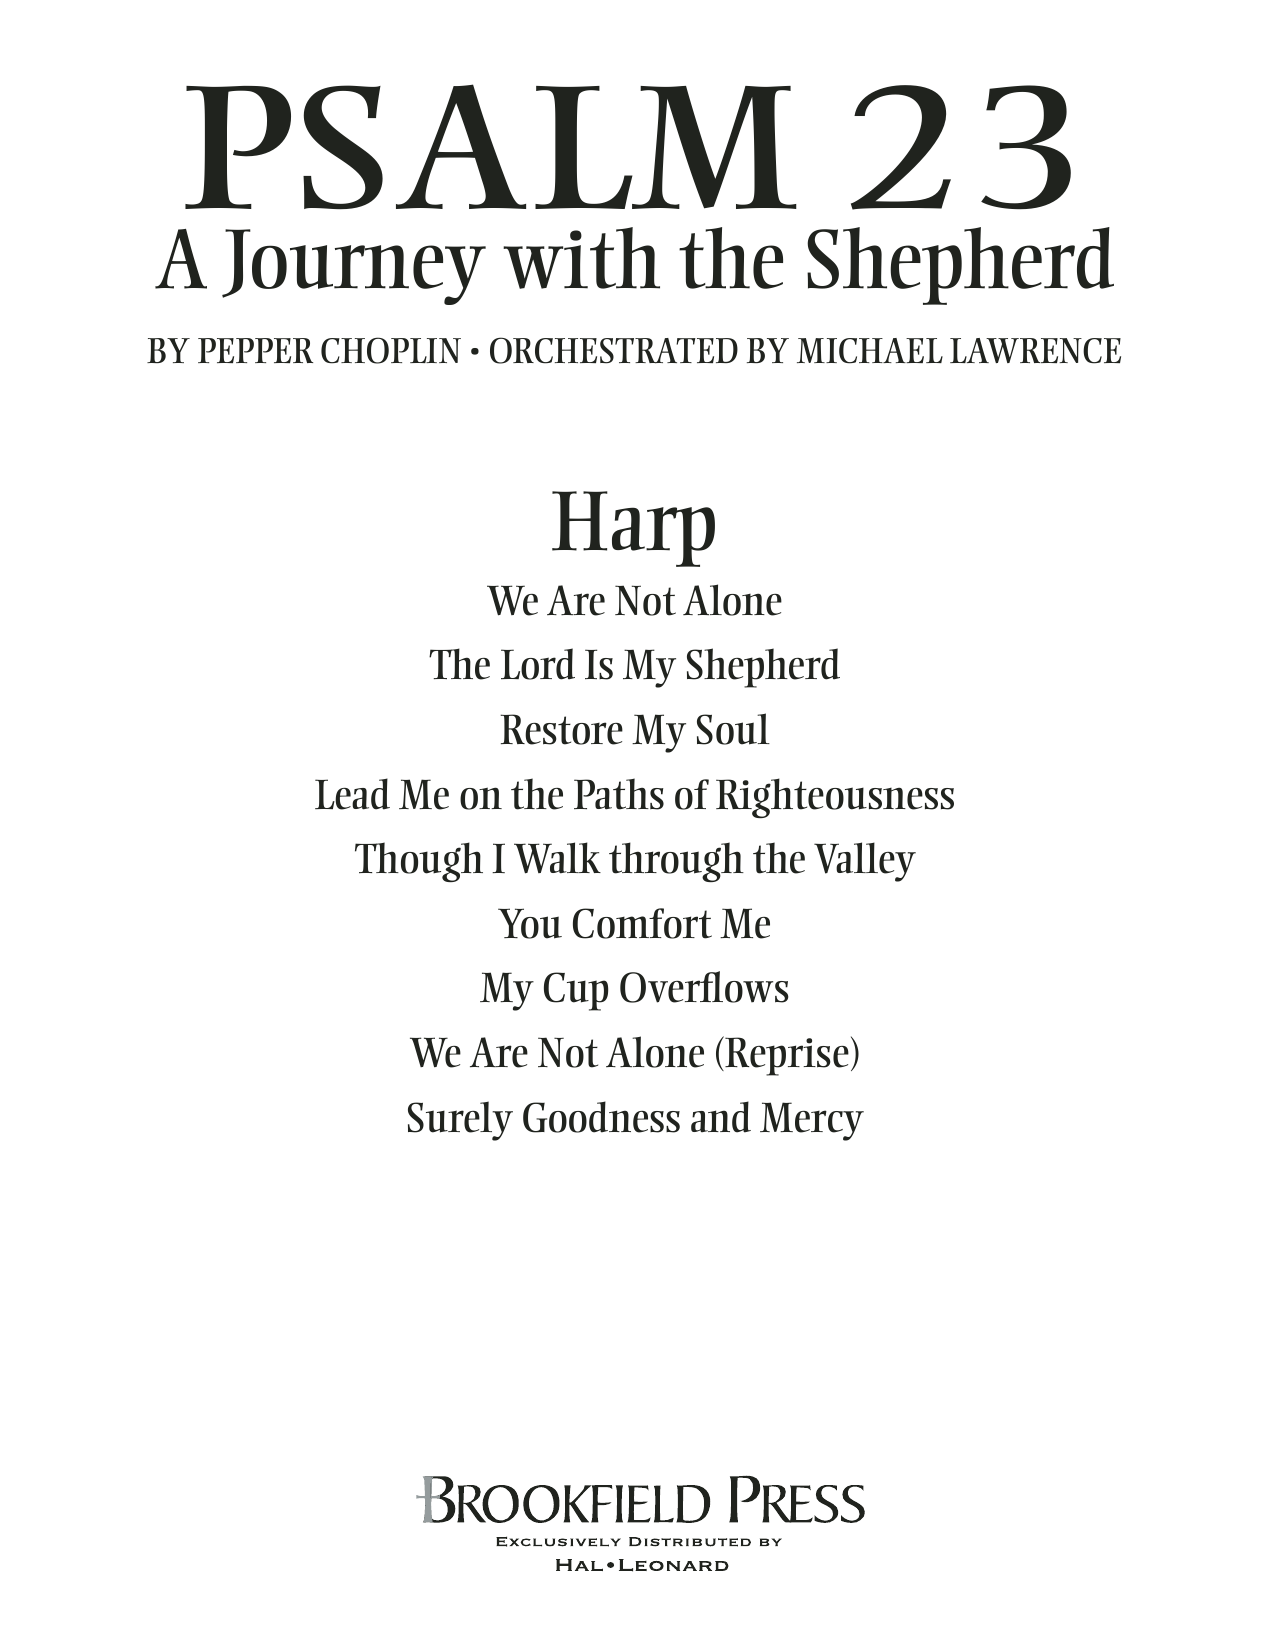 Psalm 23 - A Journey With The Shepherd - Harp Sheet Music